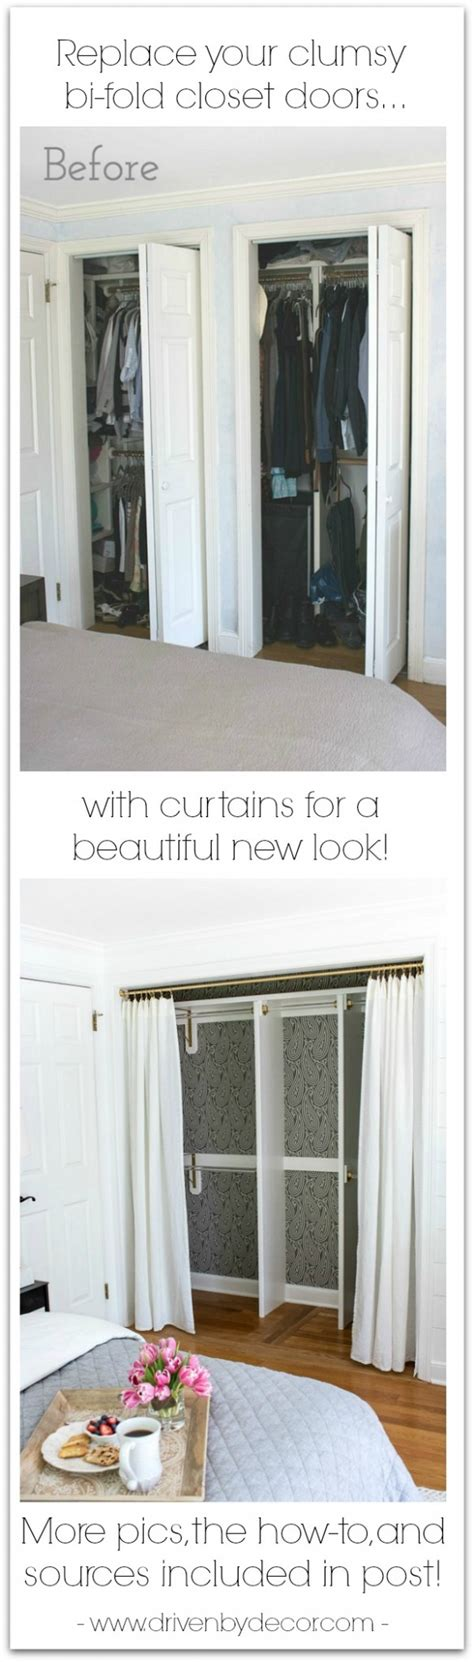 Replace Closet Doors With Curtains Replacing Bi Fold Closet Doors With Curtains Our Closet Makeover Driven By Decor